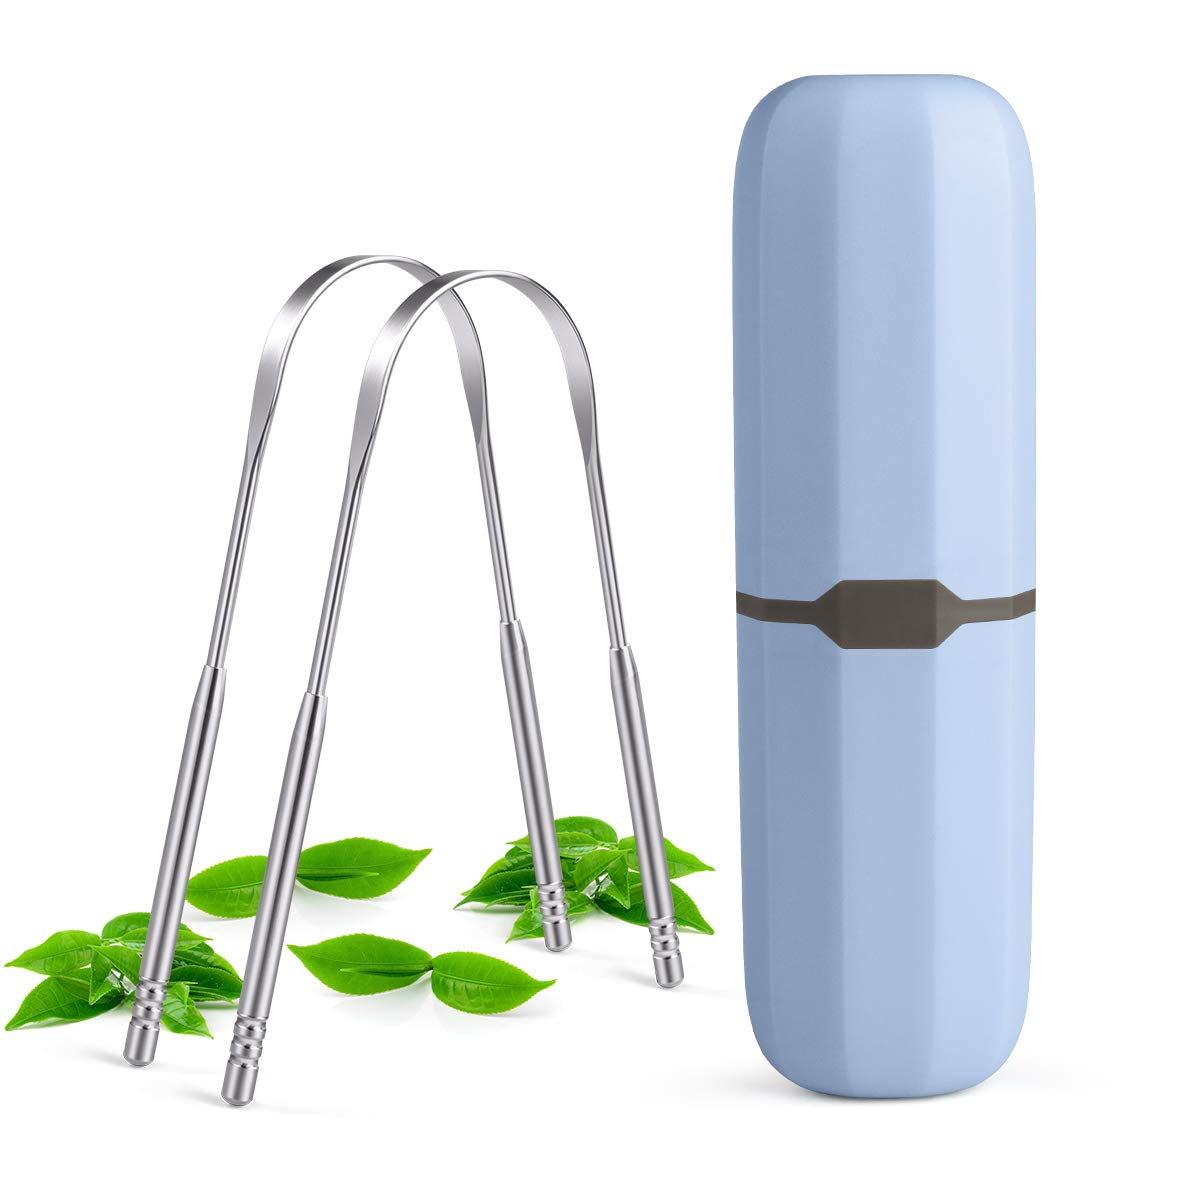 Tongue Scraper,bedace Tongue Cleaner For Adults,2pack Tounge Scraper Cleaner Stainless Steel For Men and Women With Case.